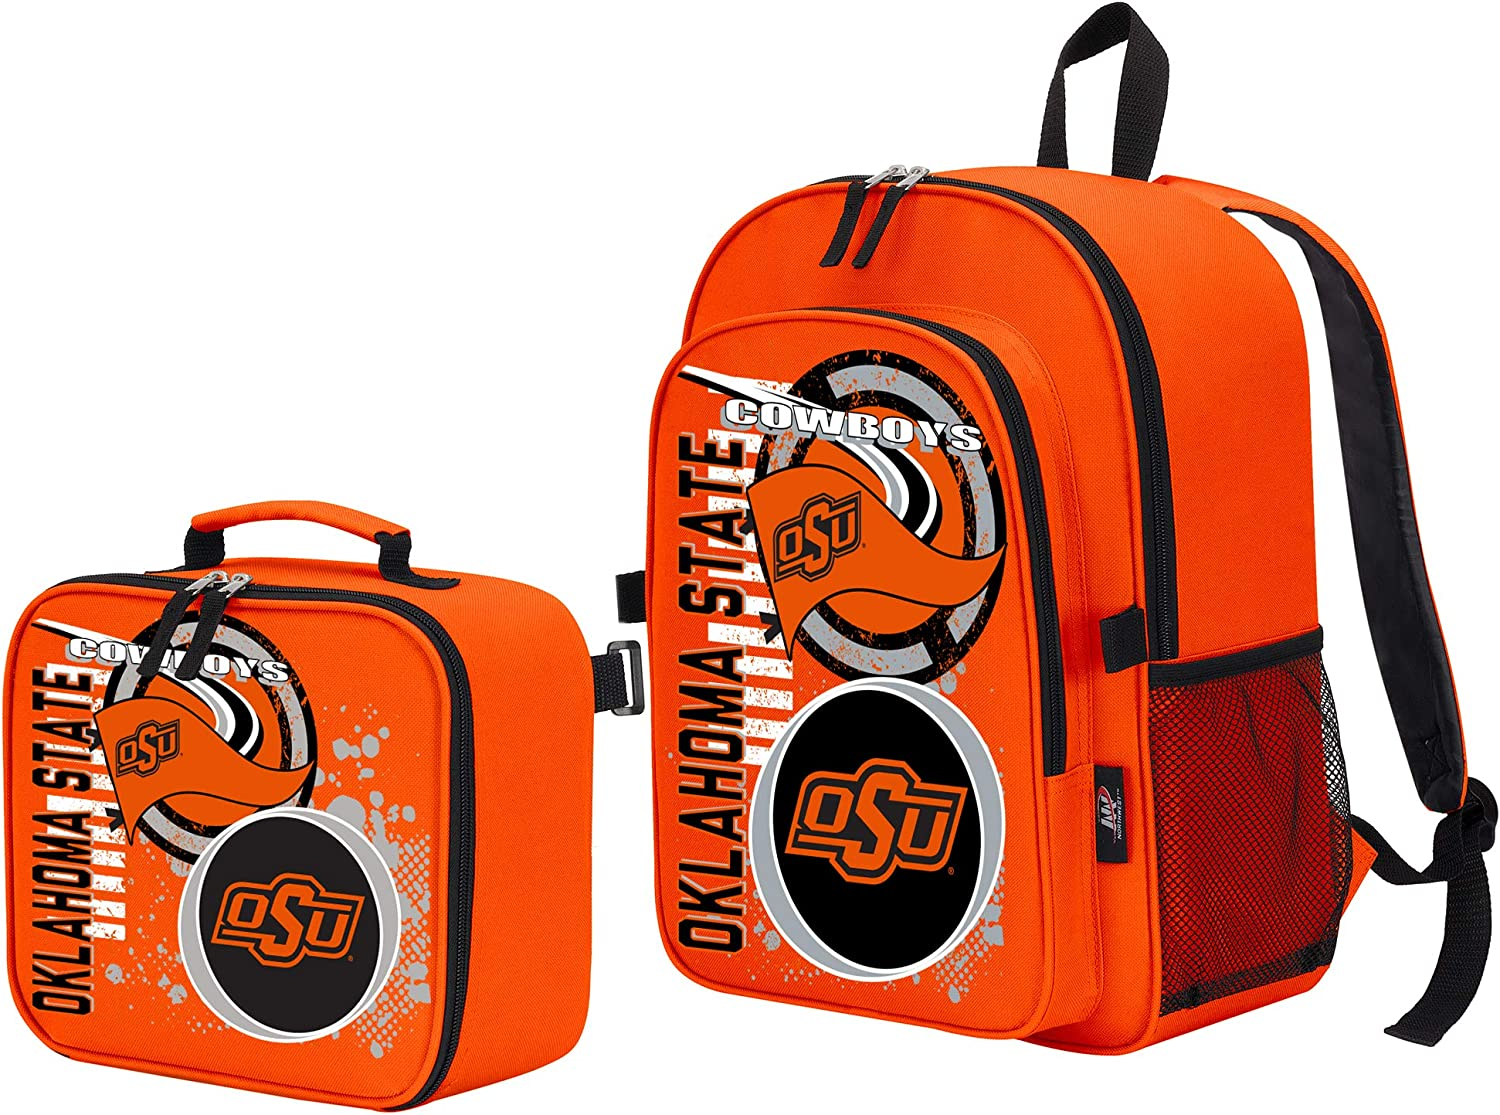 Officially Licensed Manufacturer OFFicial shop NCAA Accelerator Brand Cheap Sale Venue Backpack Kit Set M Lunch